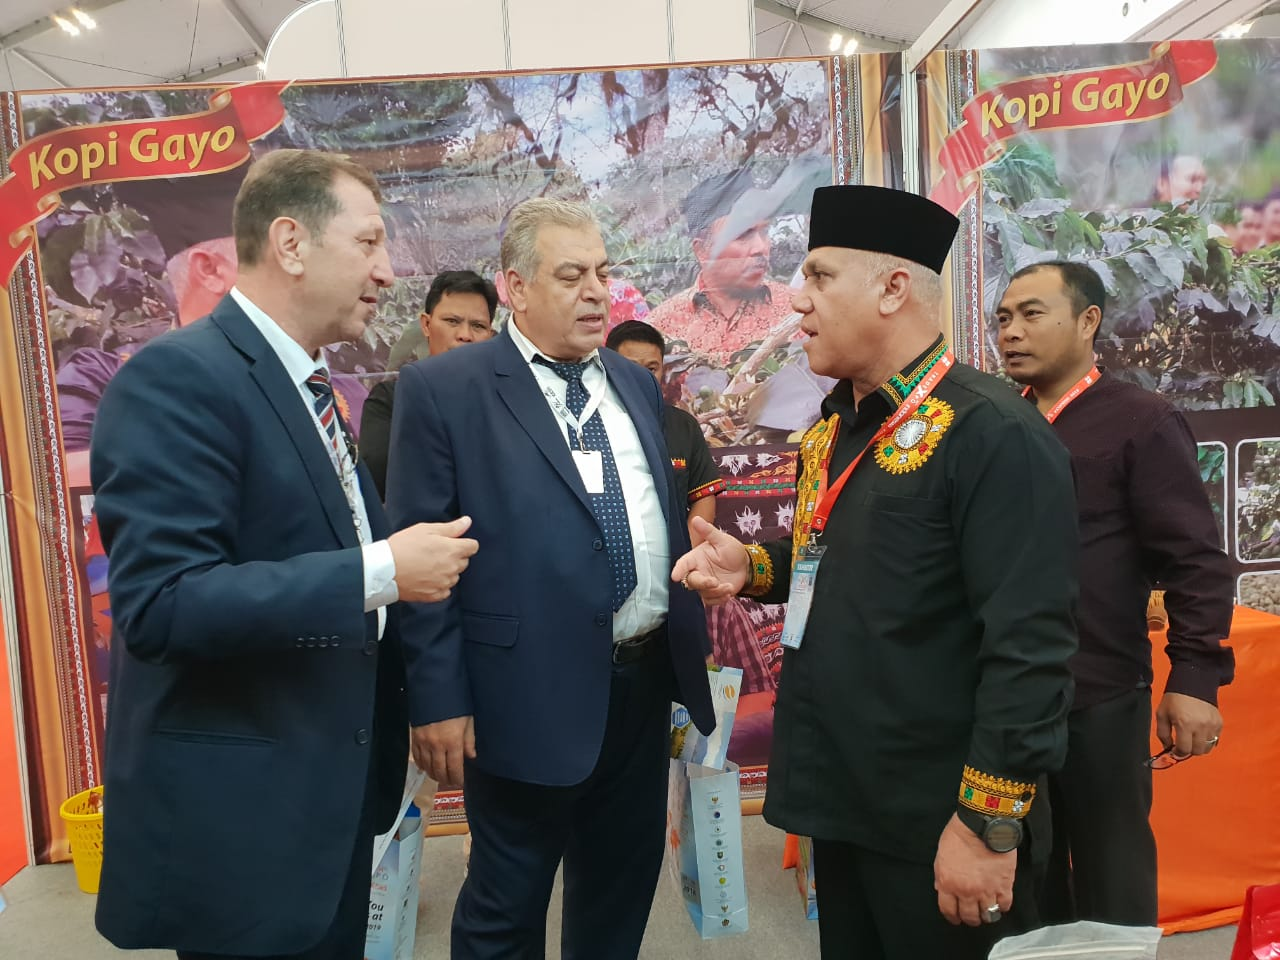 Kopi Gayo Ramaikan Trade Expo Indonesia 2018